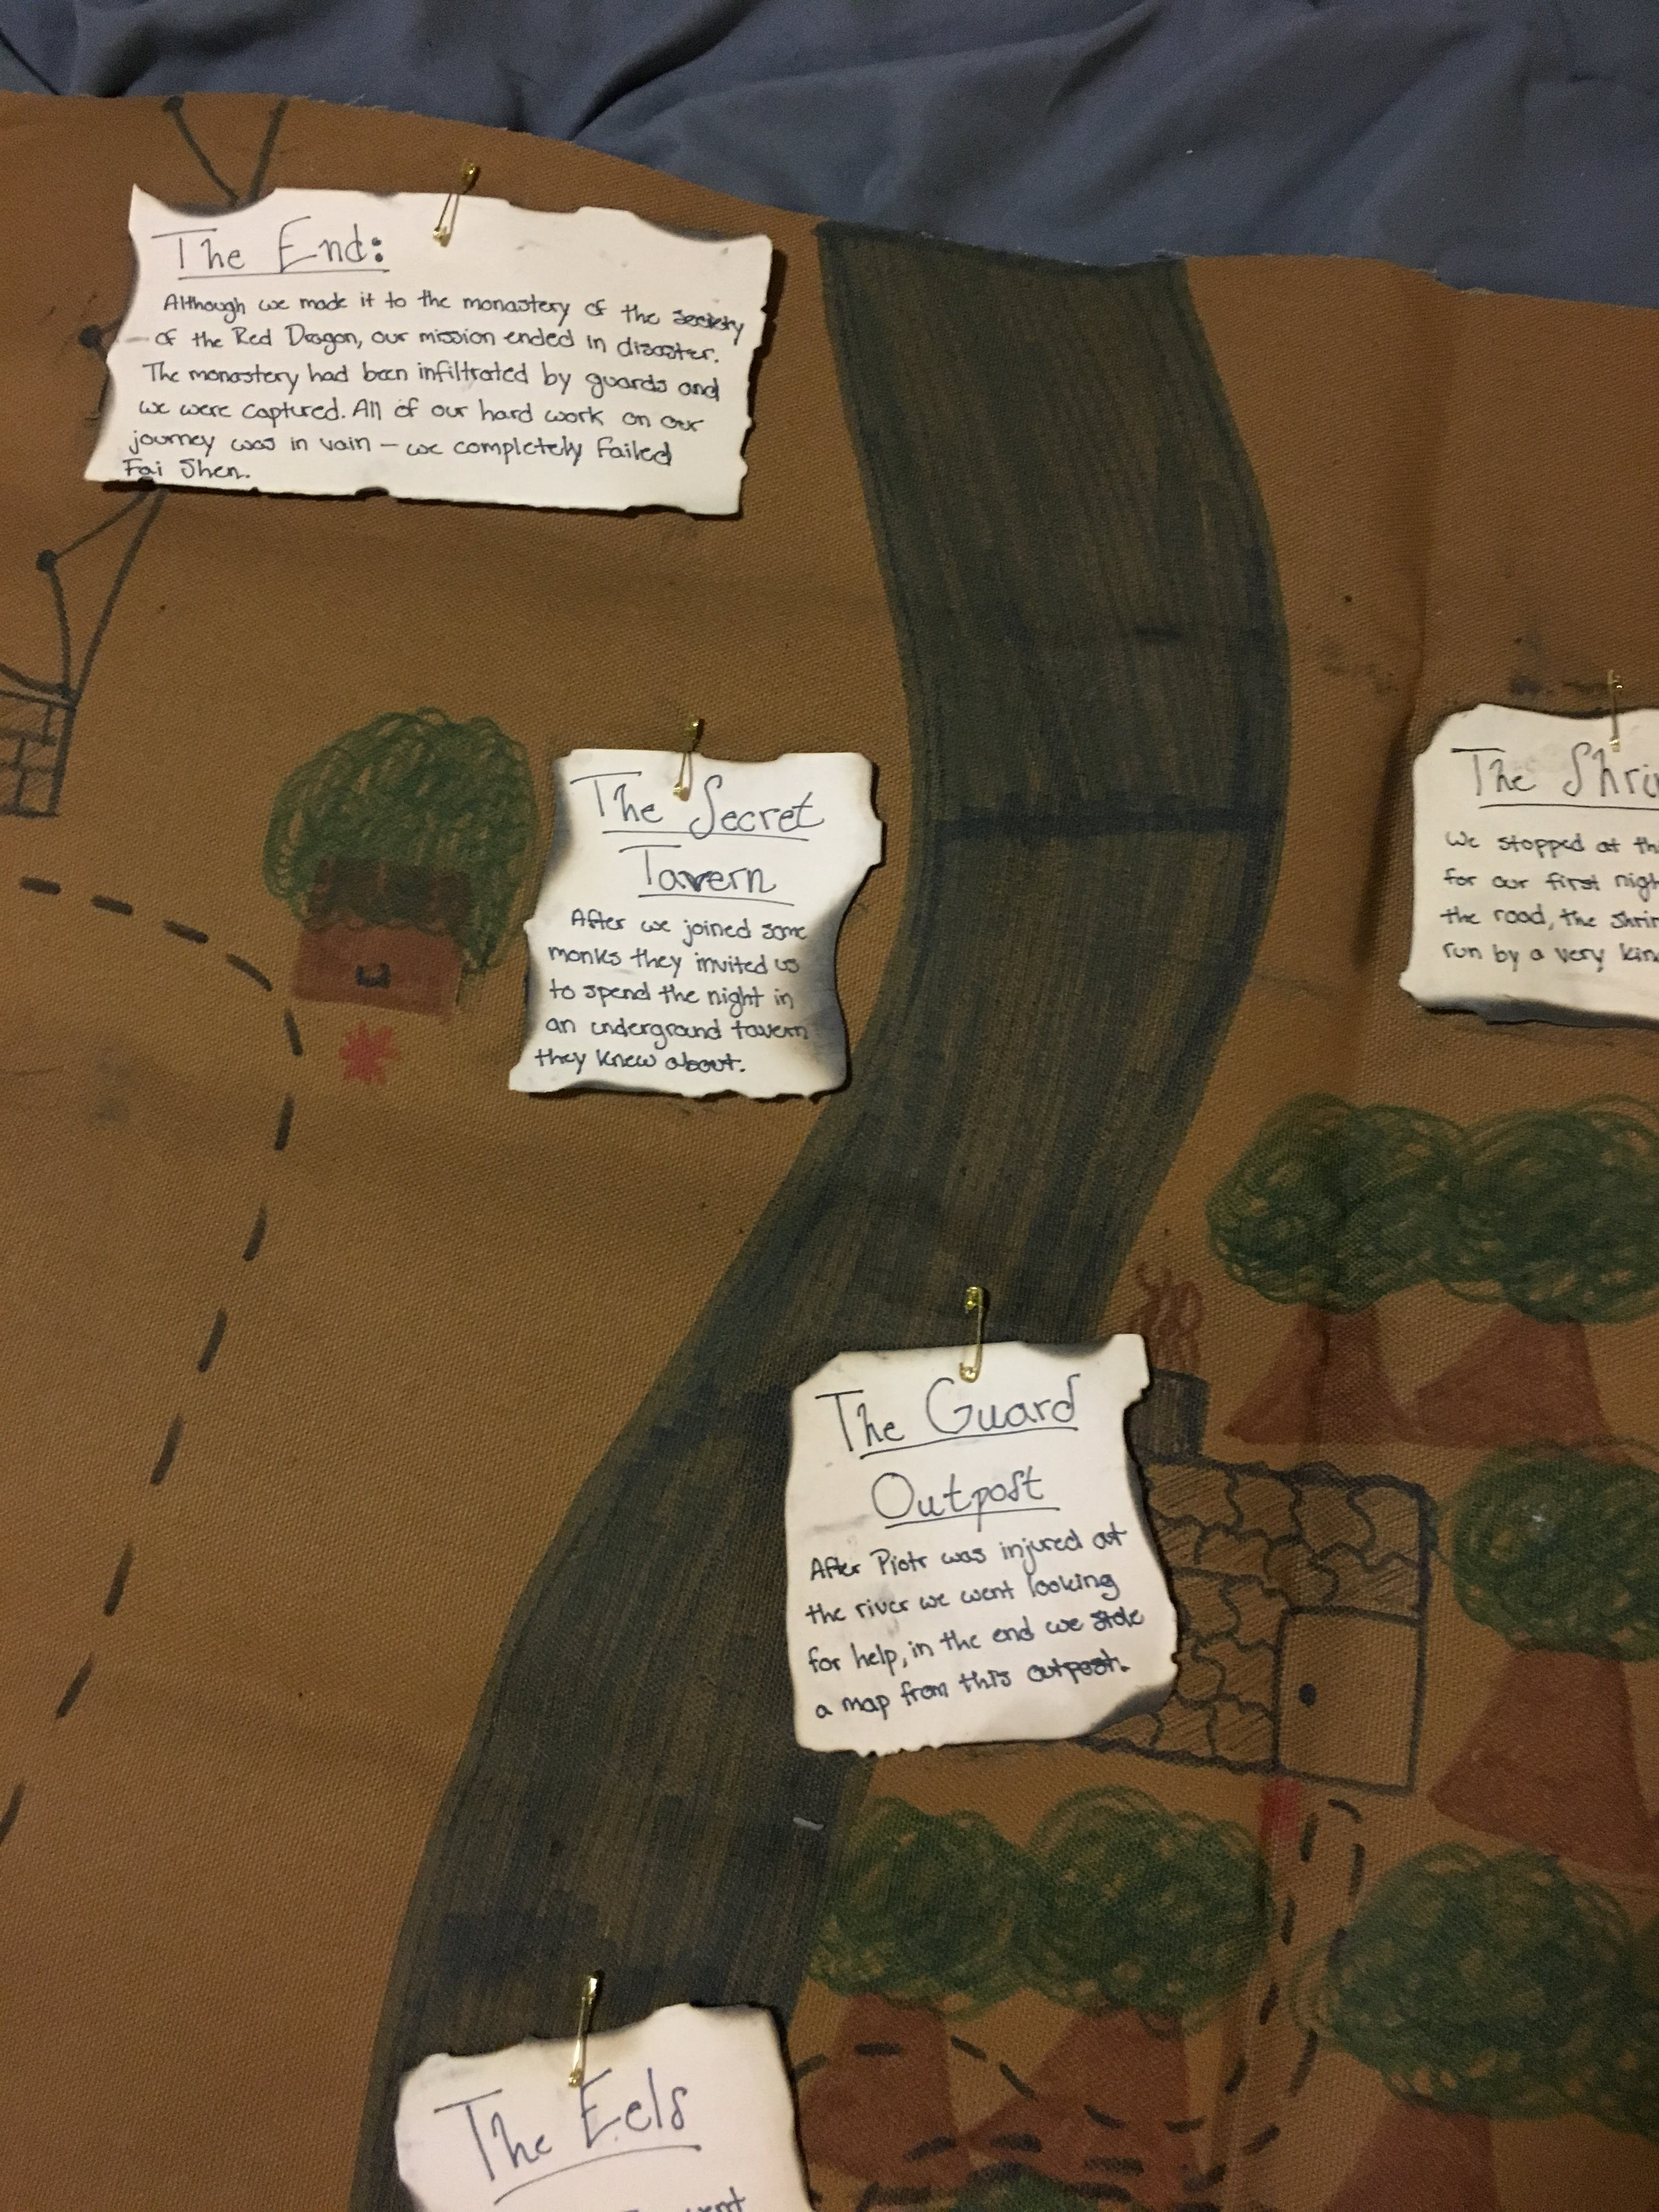 For their assignments, some students decided to create hand-drawn maps to record and reflect on their experience.